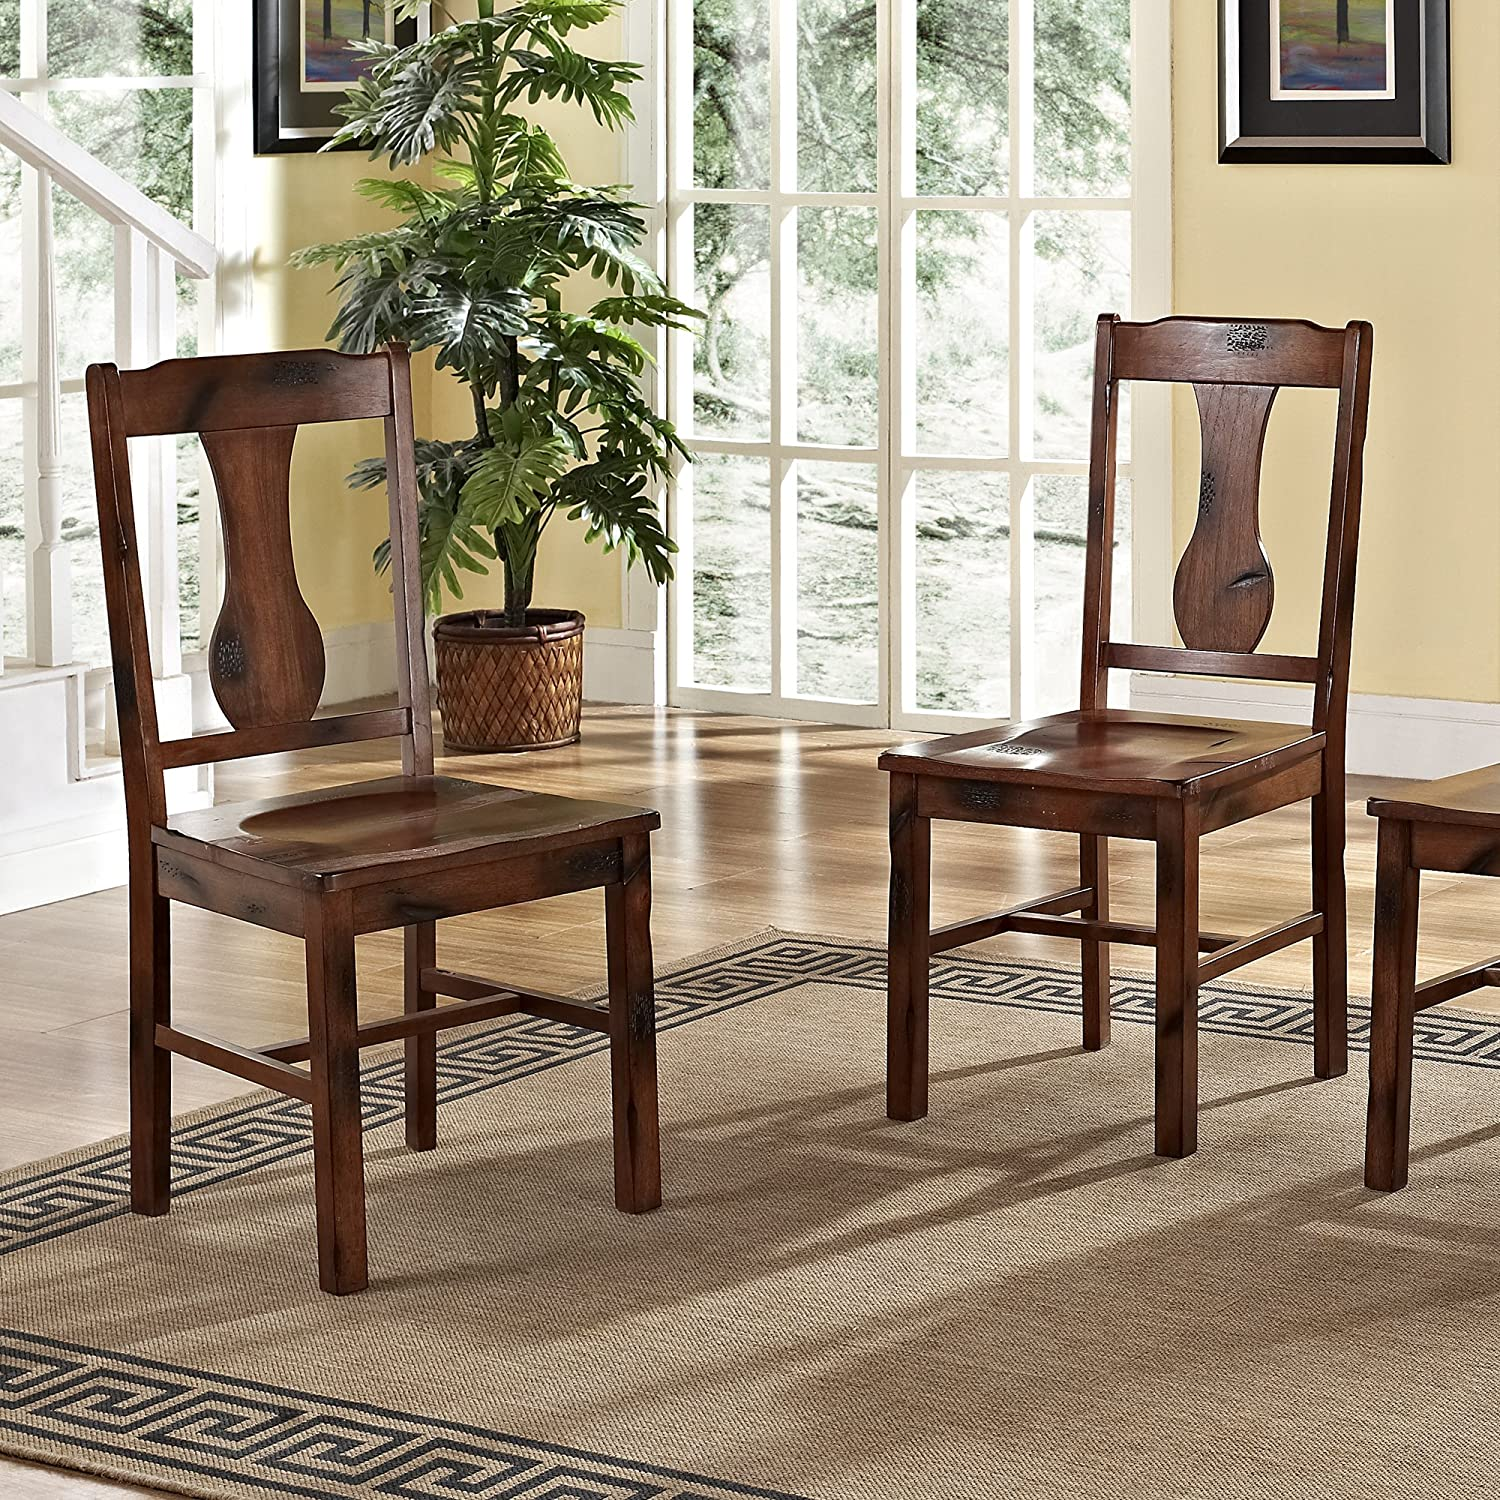 Amazon Solid Wood Dark Oak Dining Chairs Set of 2 Kitchen